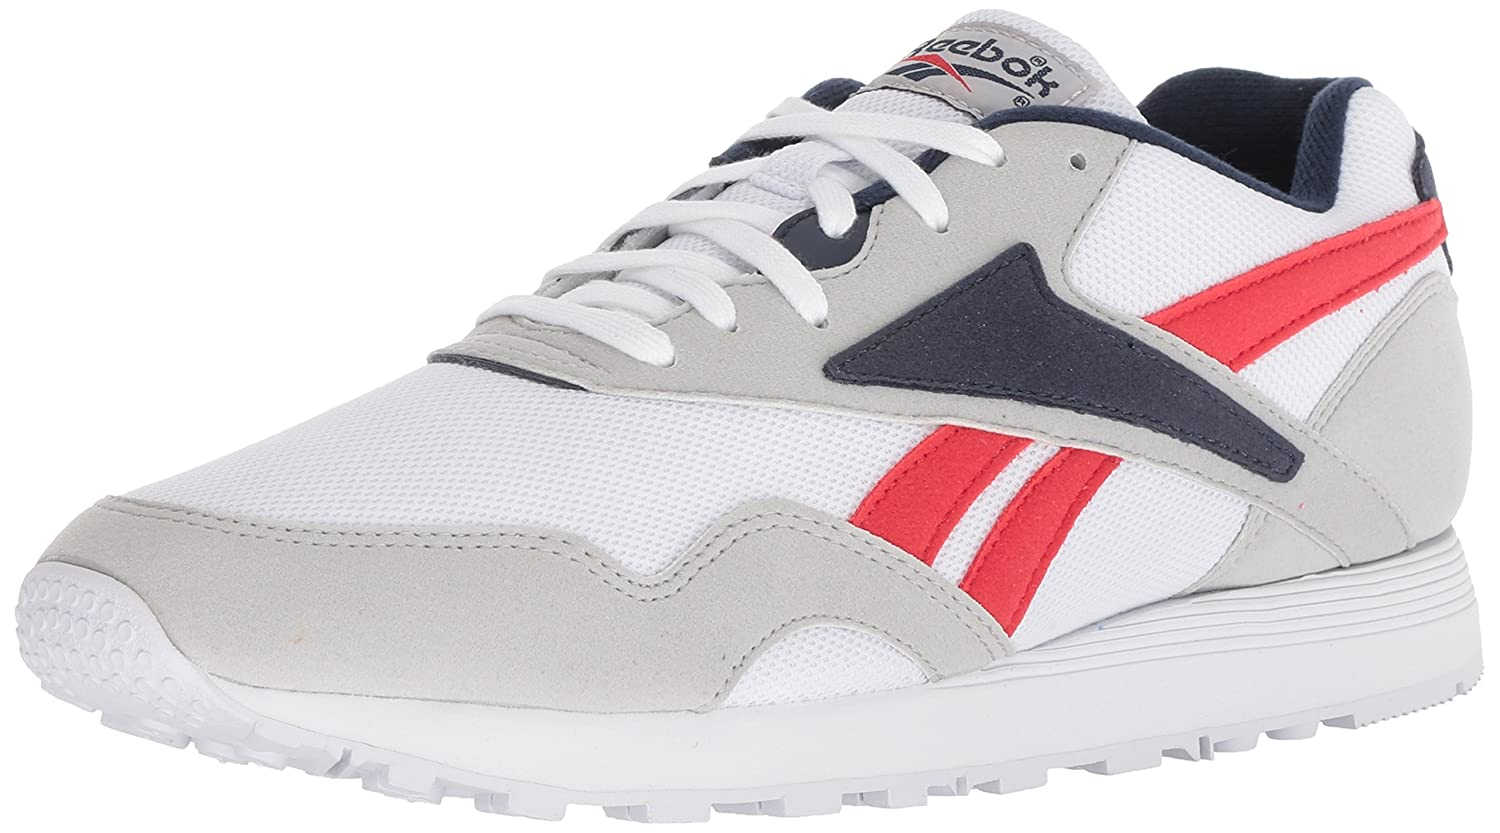 Reebok Men's Rapide B077ZK2KTF 10.5 D(M) US|Skull Grey/White/Collegia